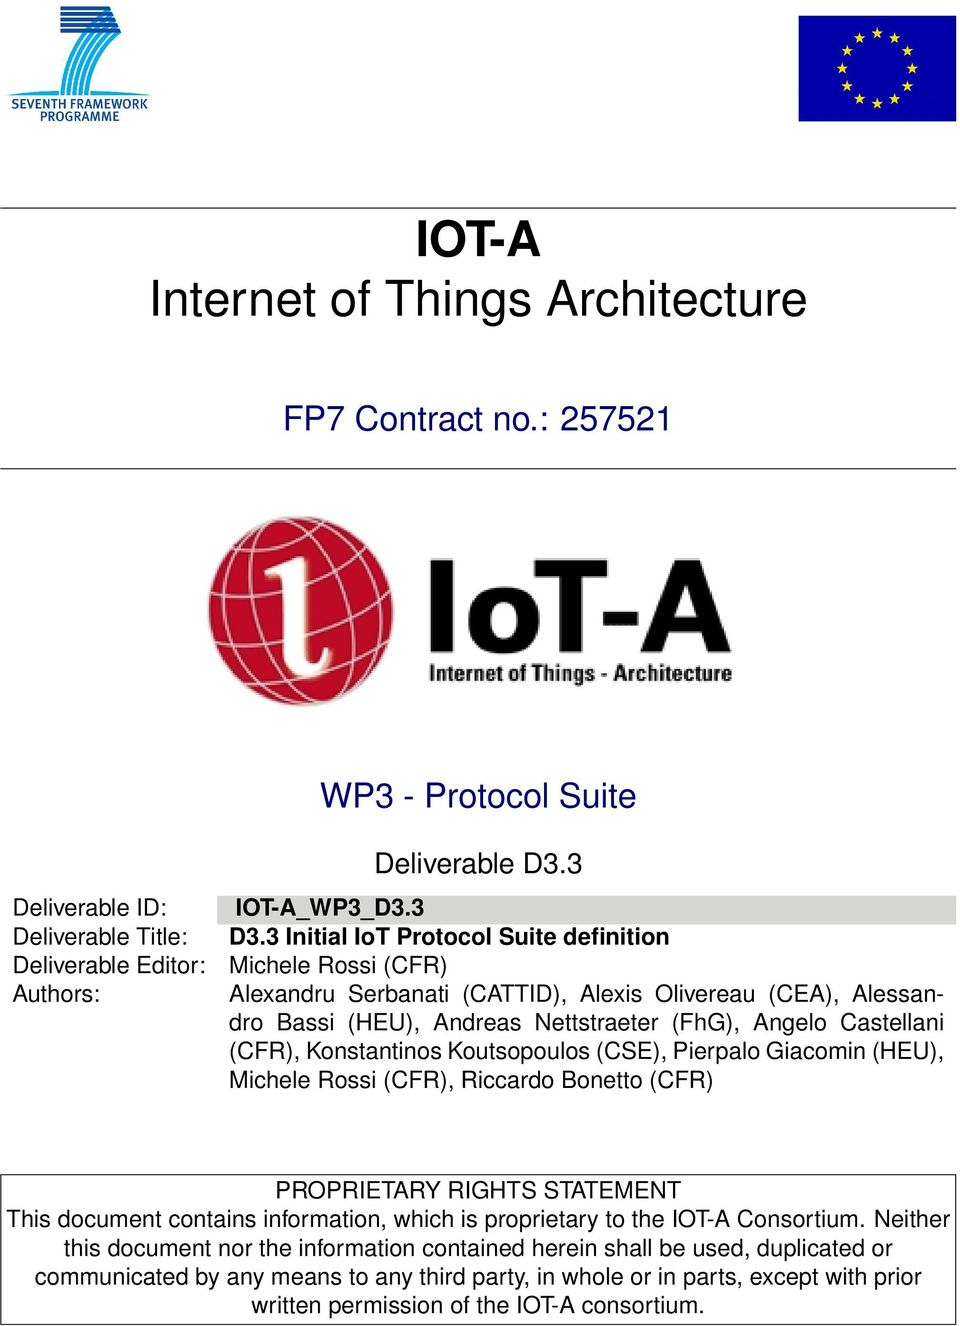 IOT-A Internet of Things Architecture - PDF